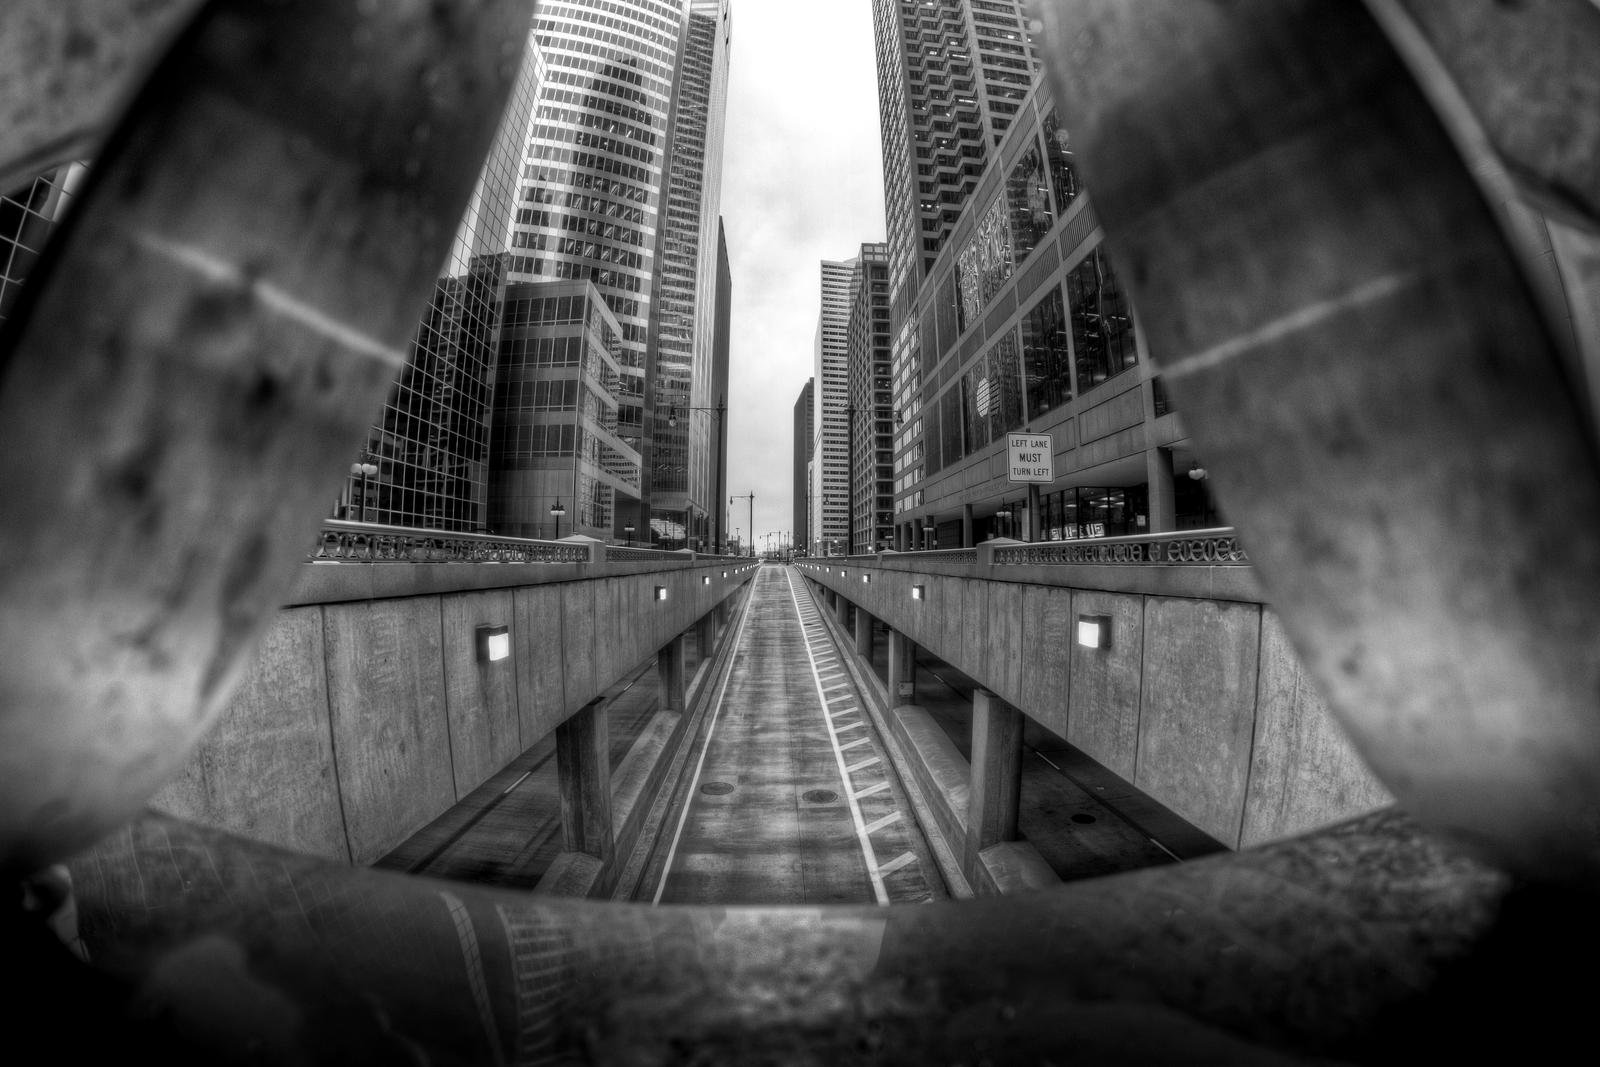 BW HDR intersection by delobbo